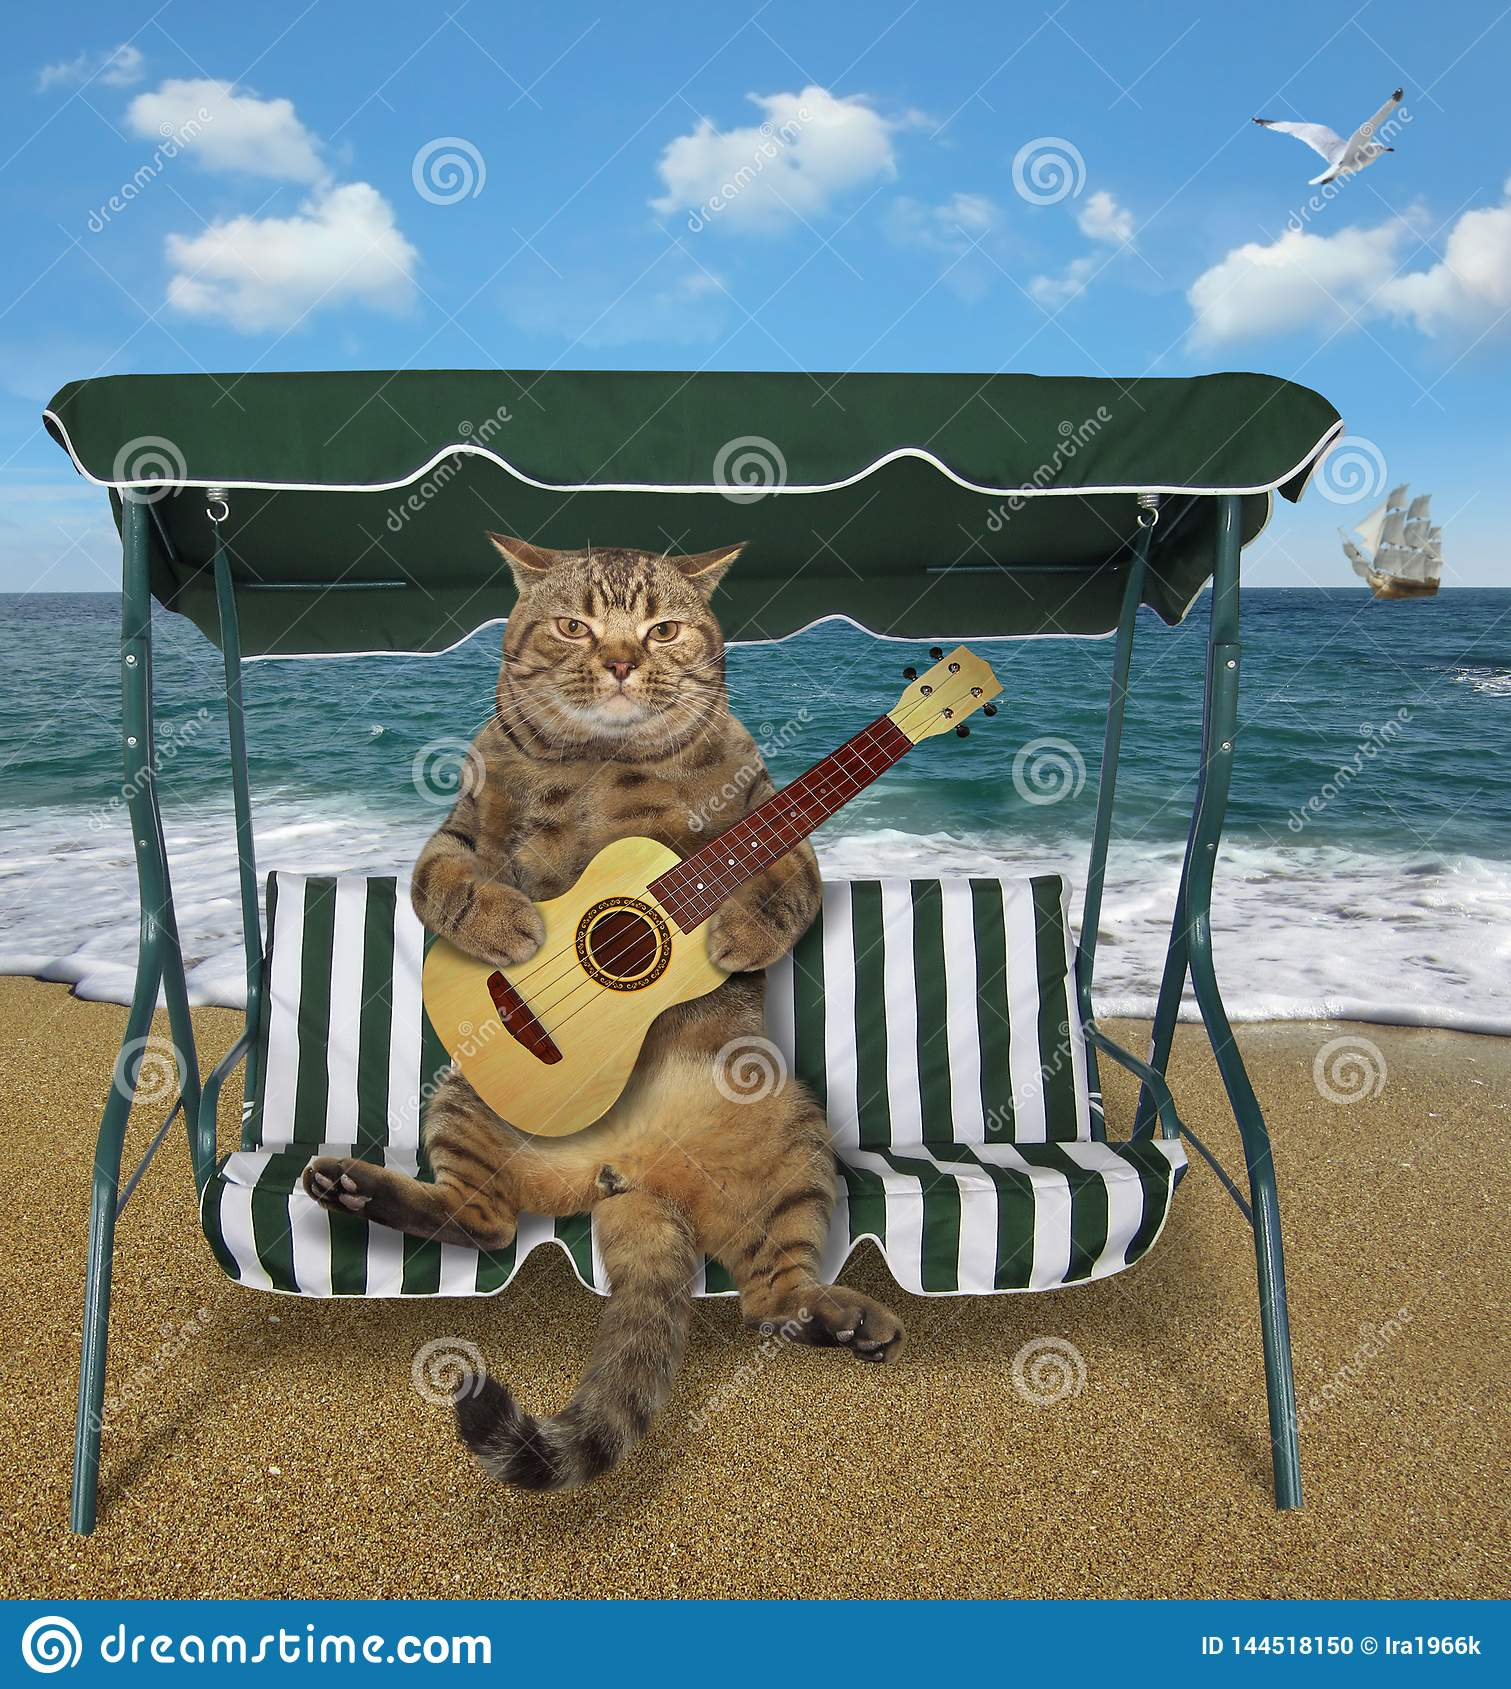 Cat playing the guitar on the beach